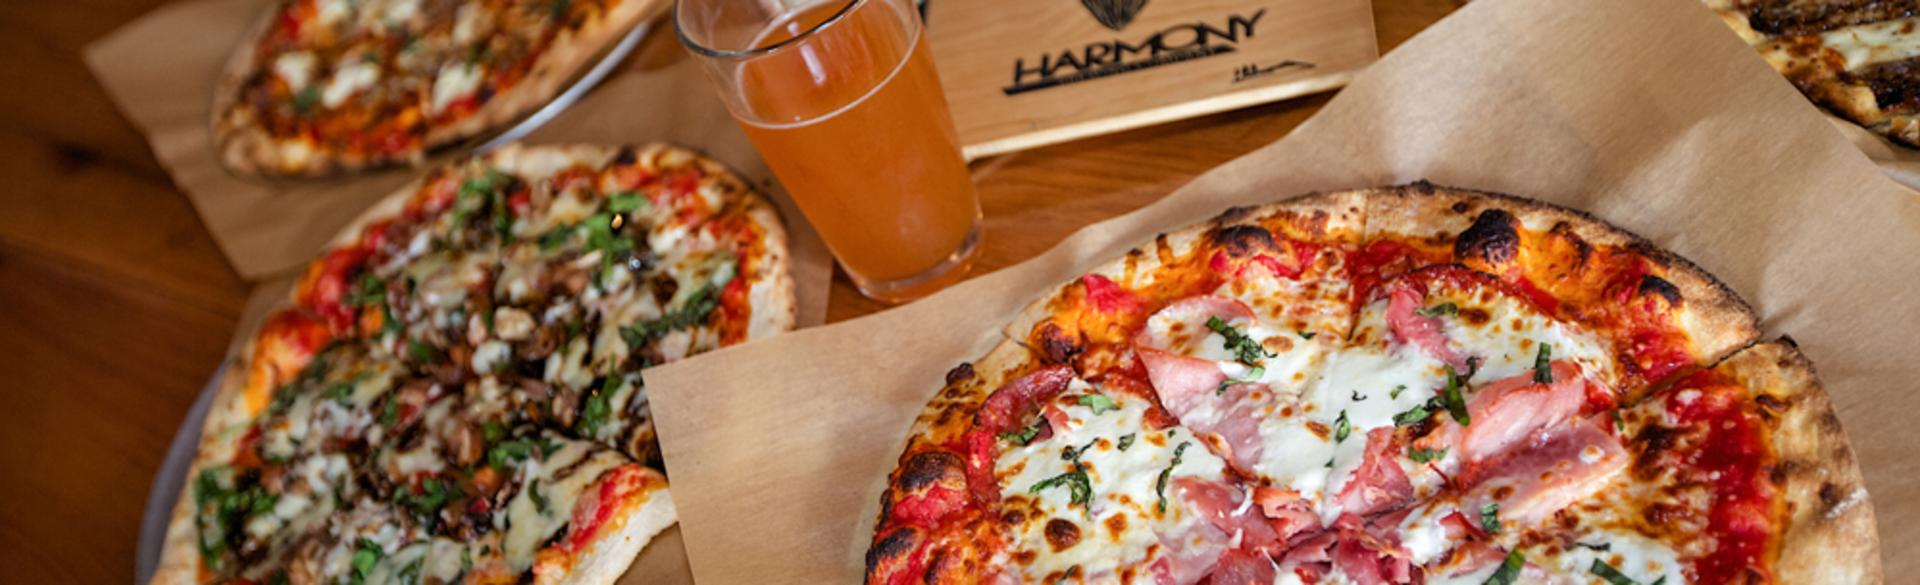 """Harmony Brewing has been voted """"Best Pizza in West Michigan"""" by Revue Magazine readers for three consecutive years."""